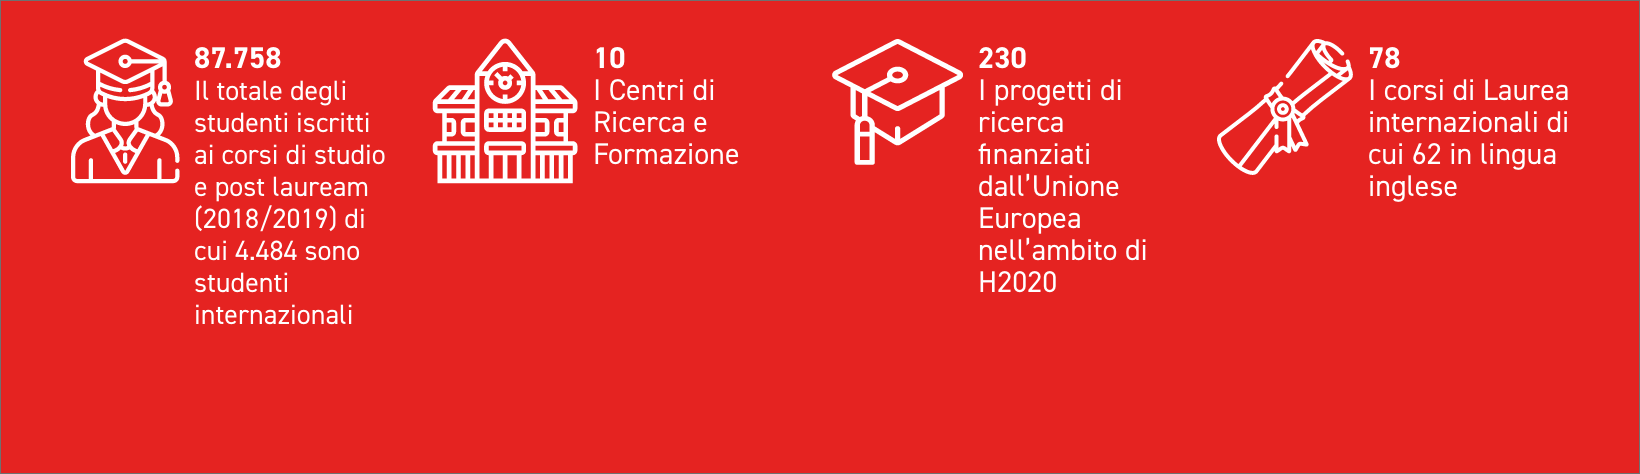 87.758 students enrolled in graduate and master programs (AY 2018/2019) of which 4.484 are international students 10 Research and education centers 230 research projects financed by the European Union for H2020 78 graduate programs of which 62 are in Engl